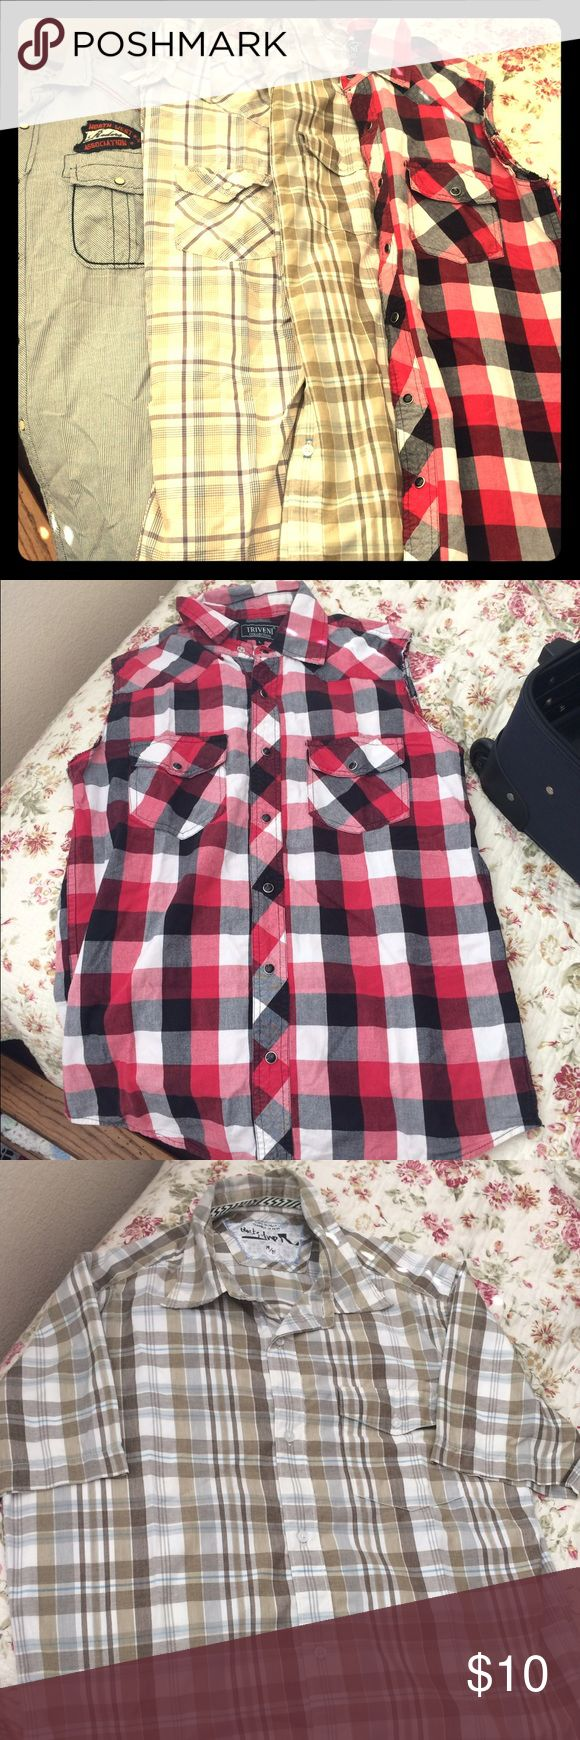 BUNDLE MEN SHIRTS Good condition of men shirts. Brands Arizona, Old Navy, Quicksilver, and Triveni! 3 have short sleeves and one is sleeveless as noted in pics. One states size L but fits like M, rest are M size. GREAT DEAL FIRM PRICE! Shirts Casual Button Down Shirts